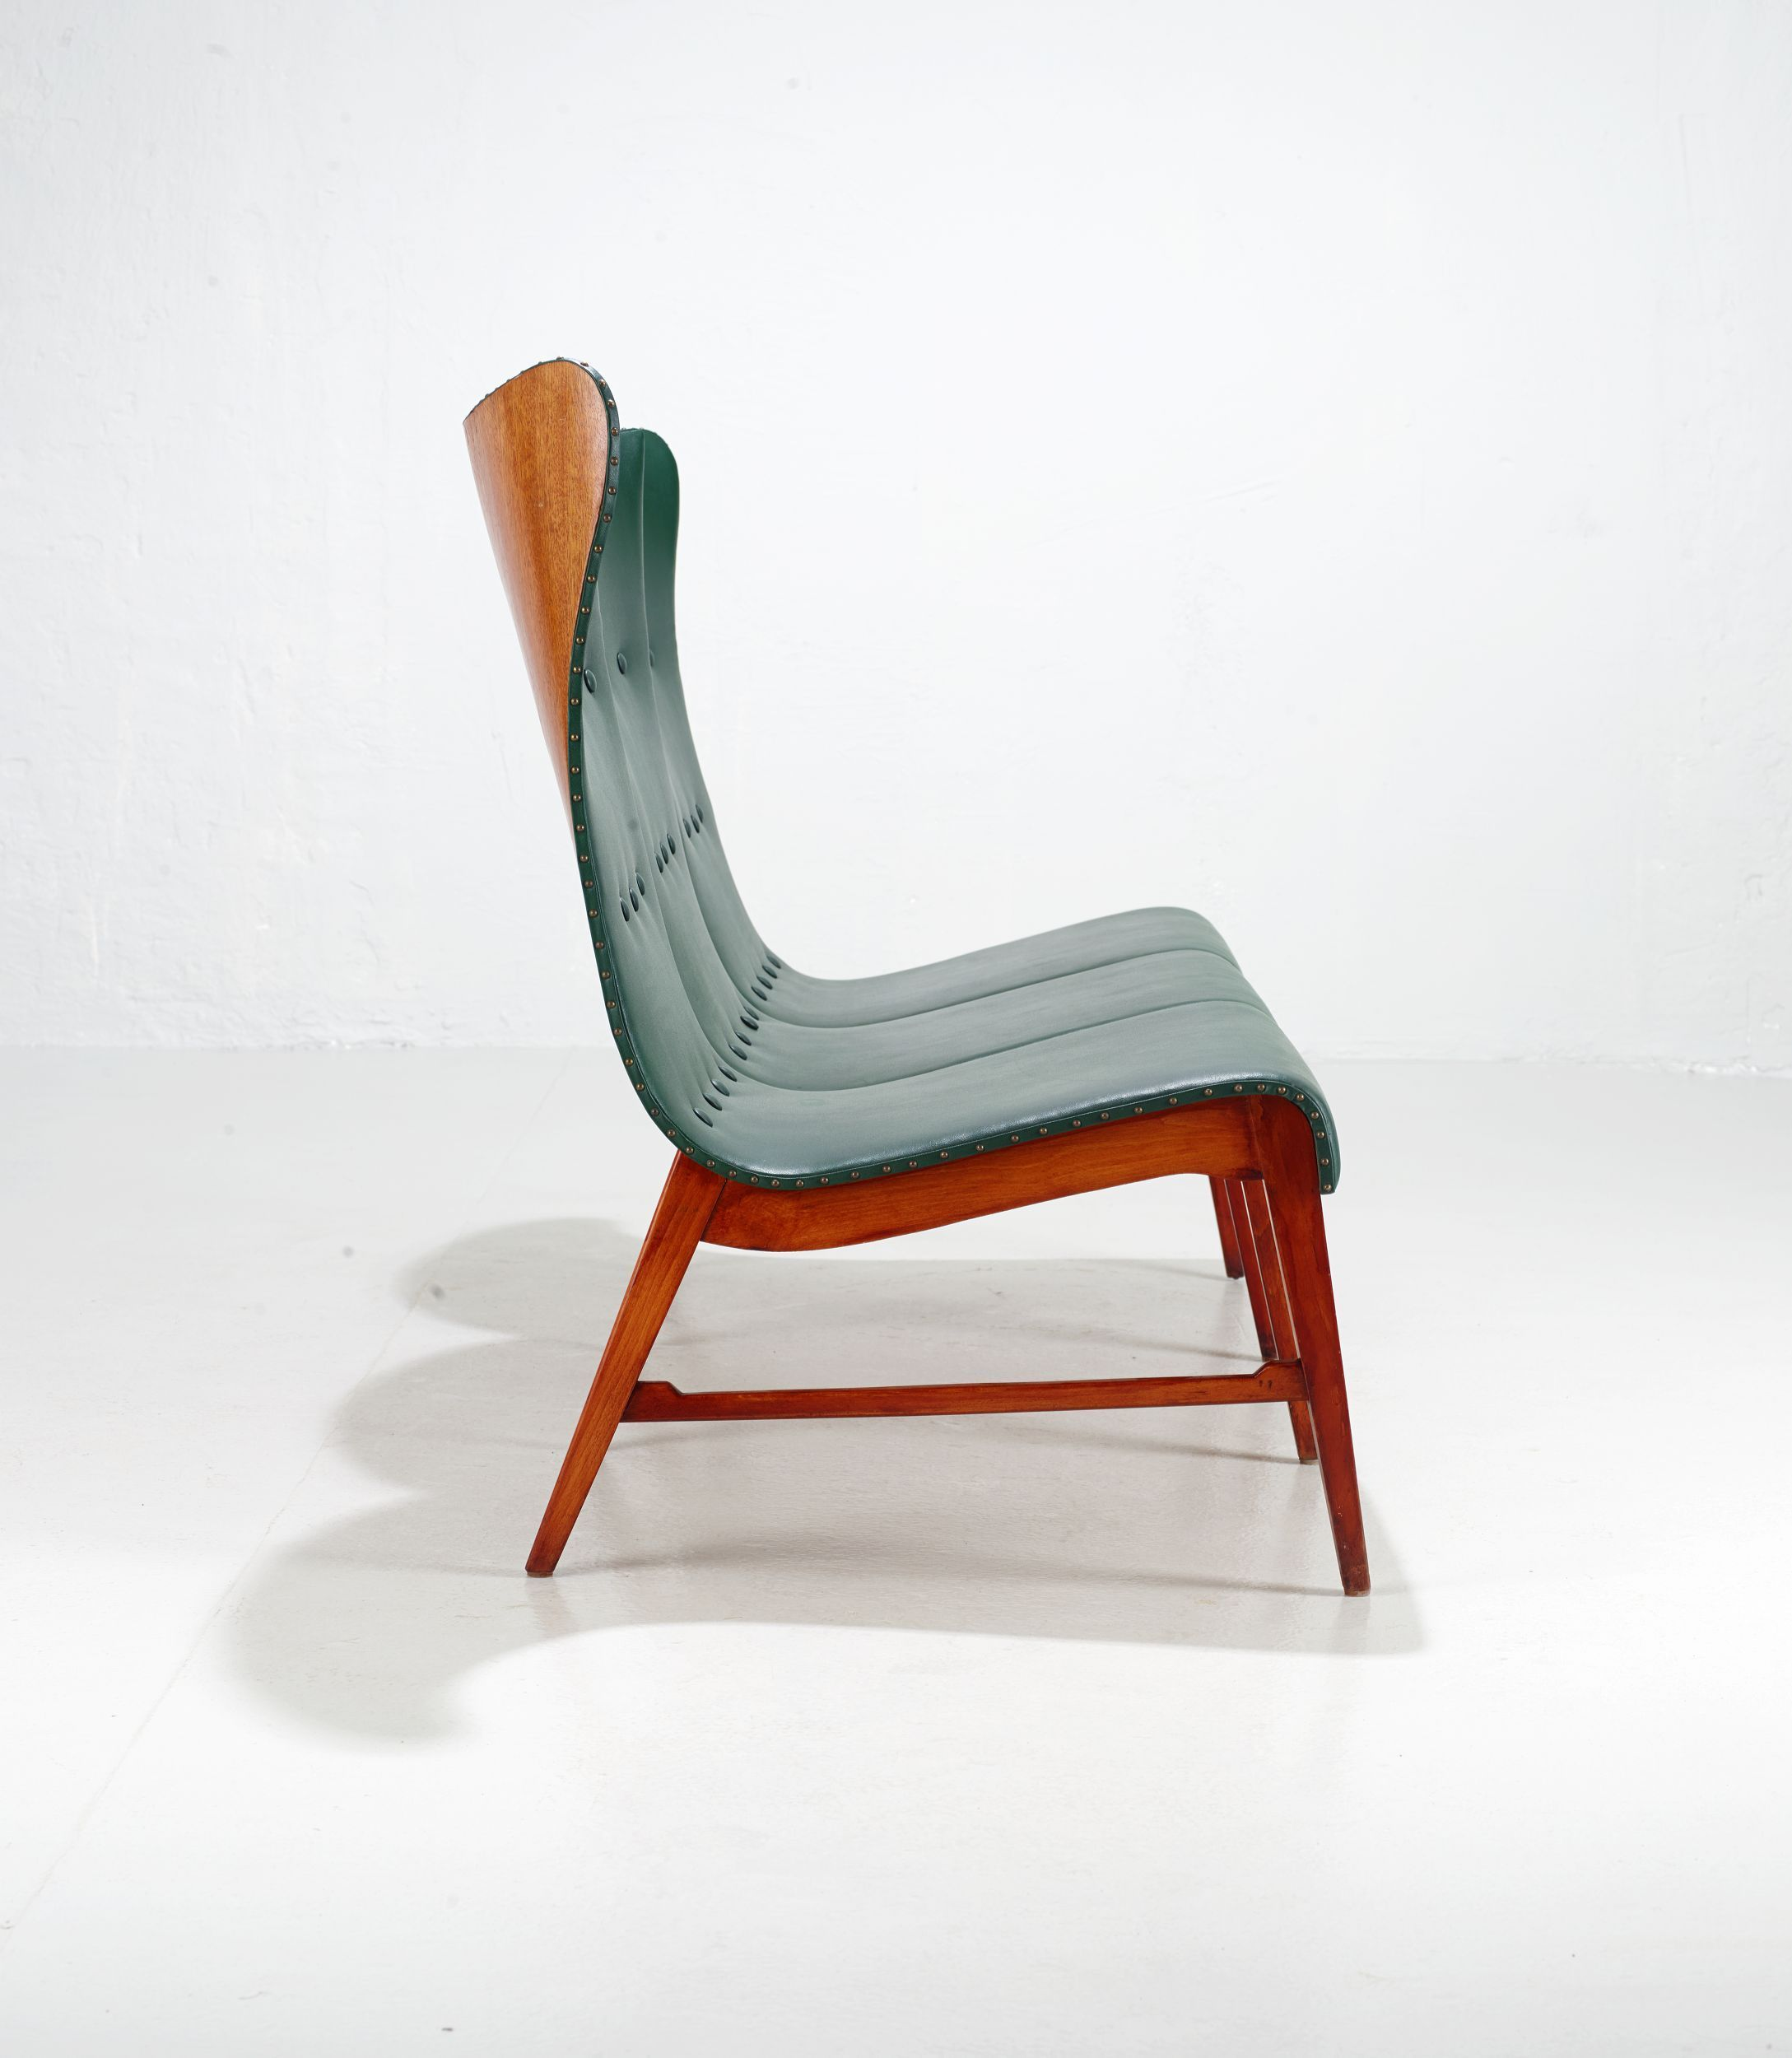 Cool Lounge Chairs Axel Larsson Attributed Sofa By Kocks Snickerifabriker